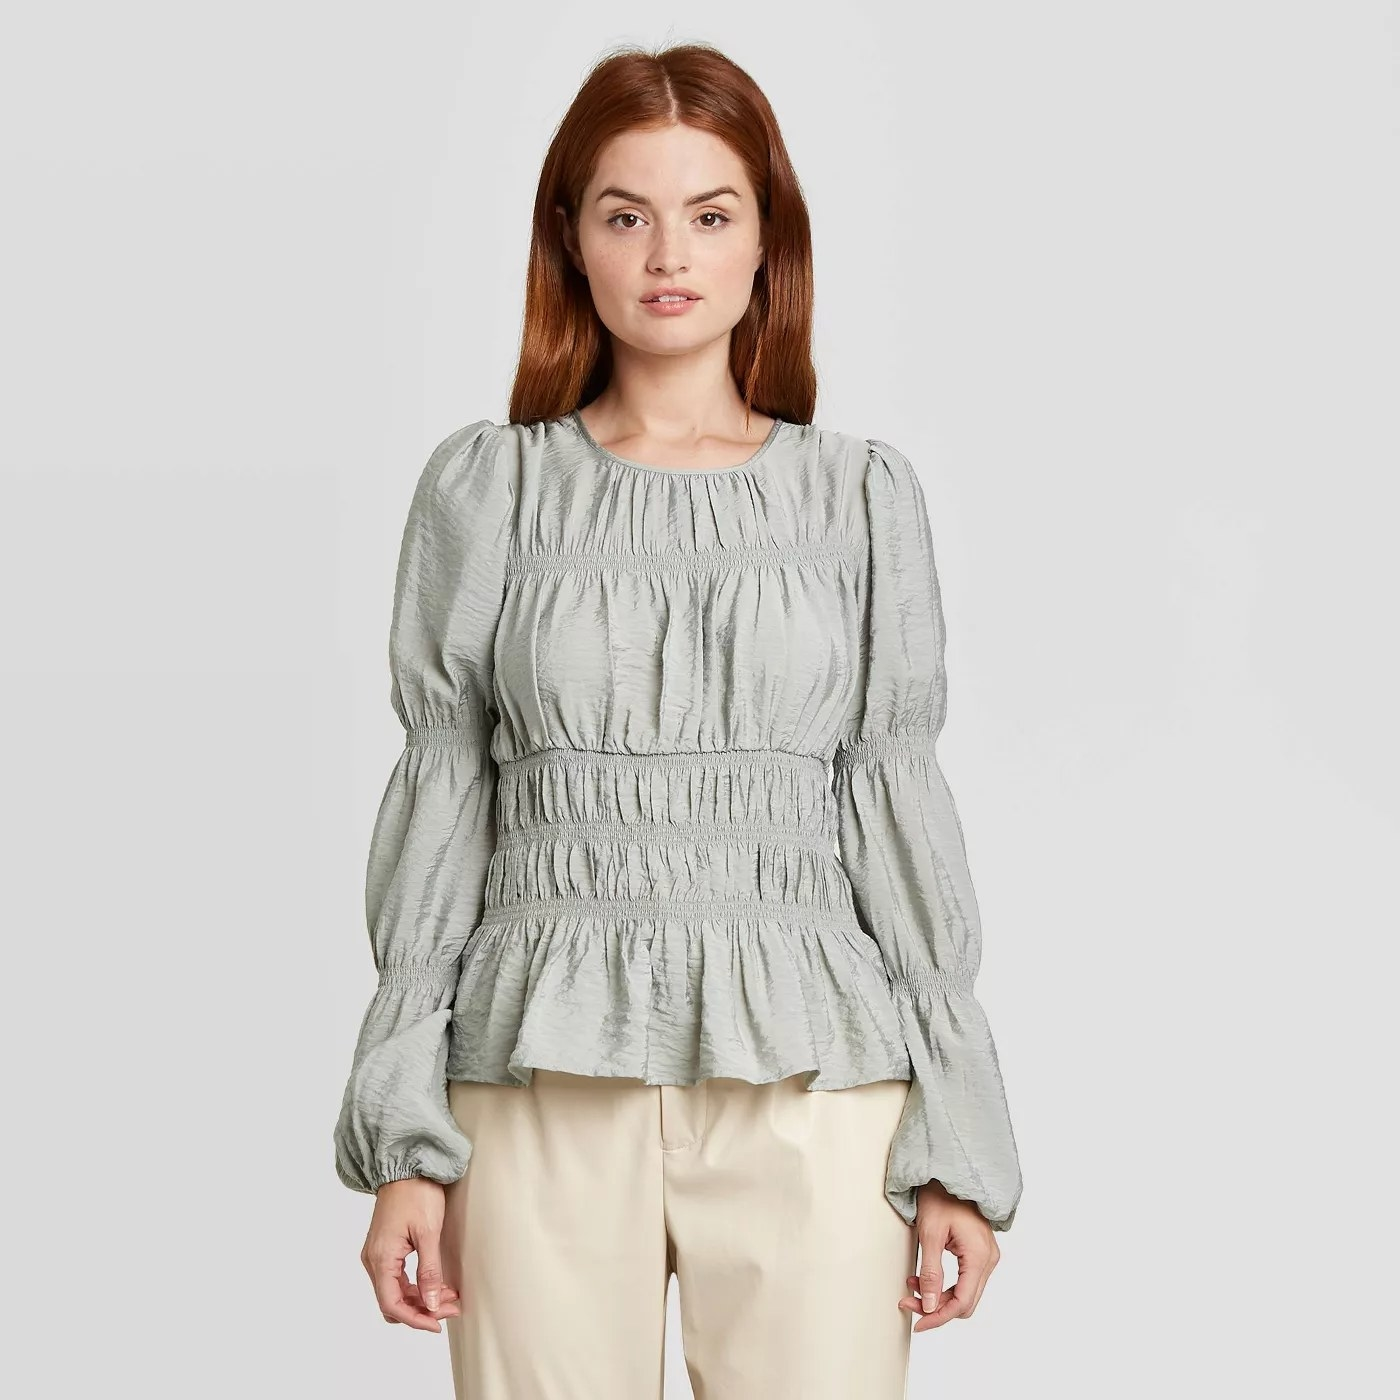 model wears cinched waist and tiered puff  sleeved muted green blouse